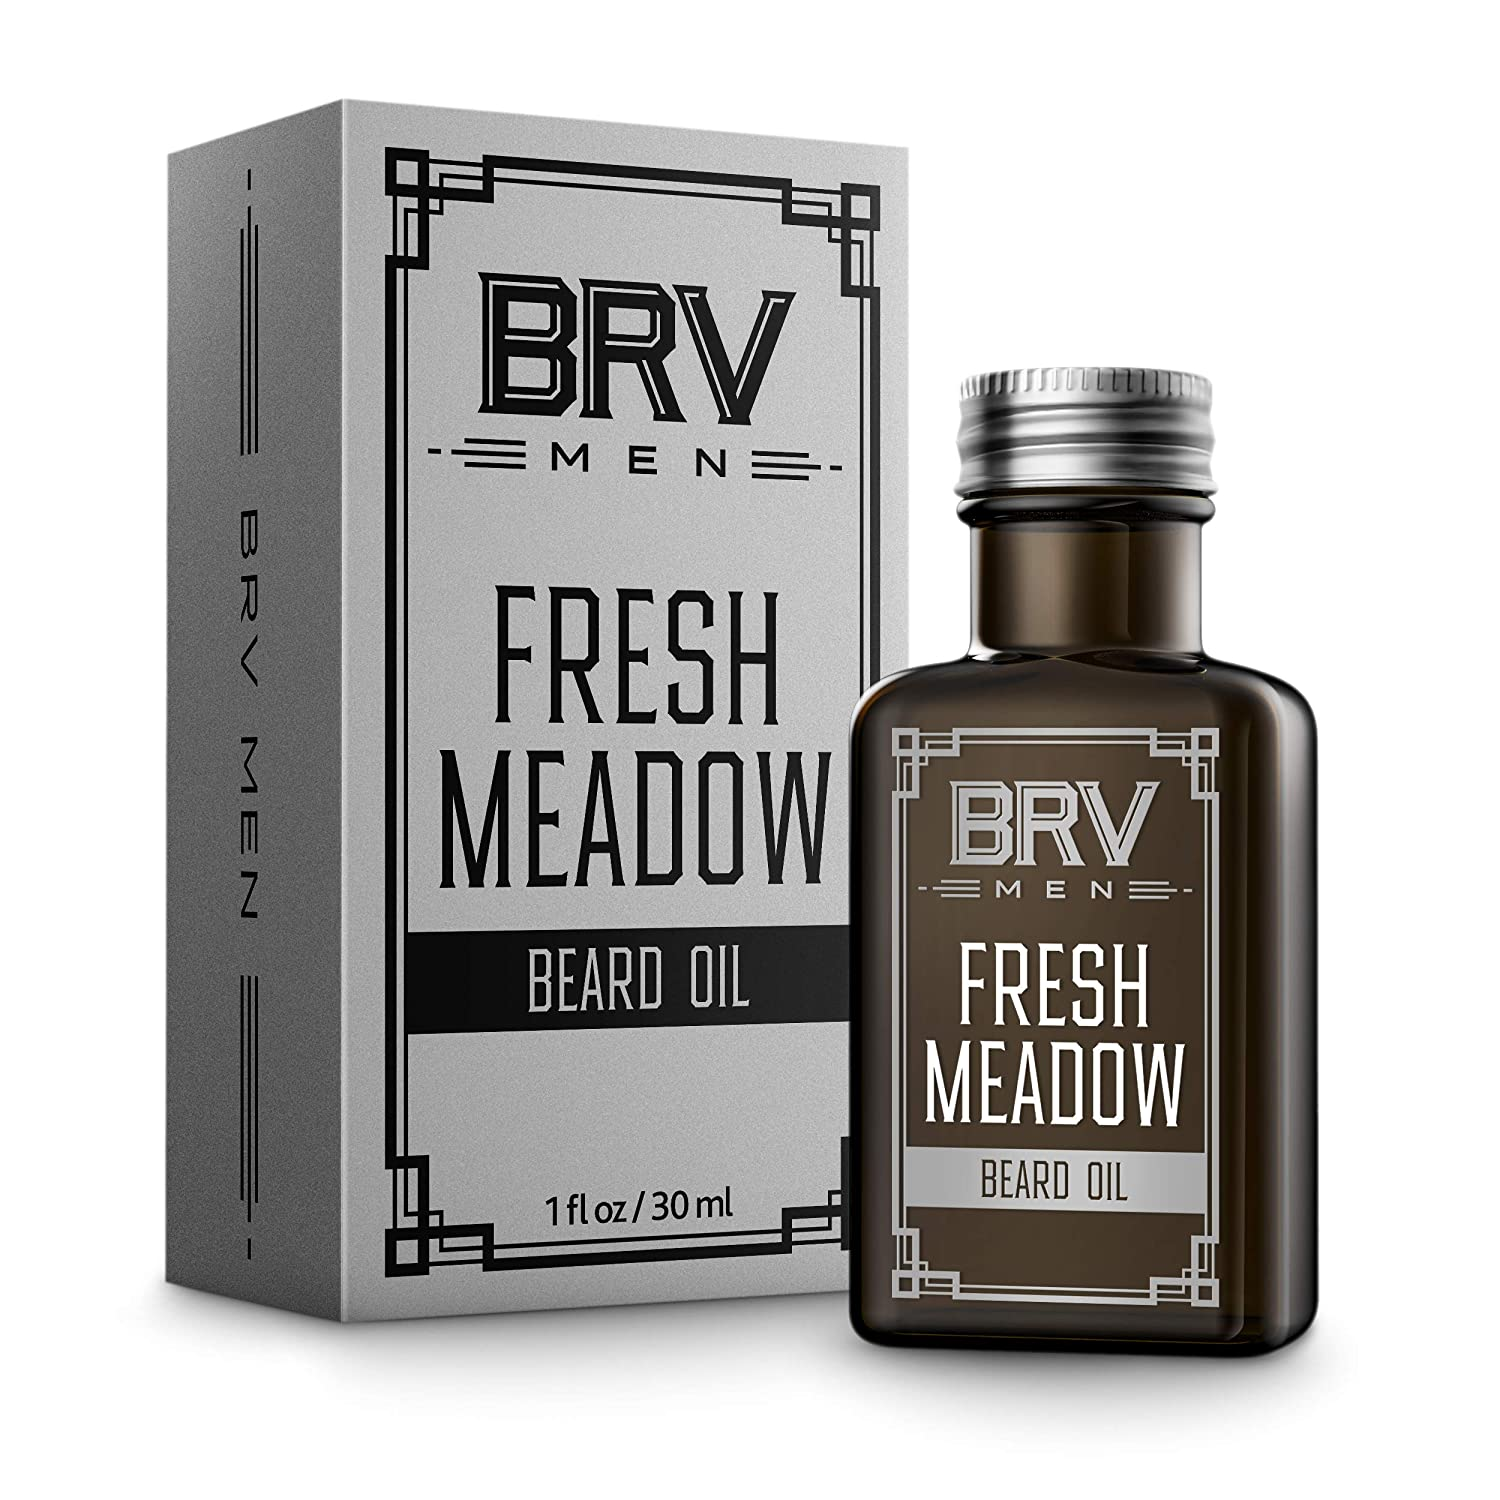 BRV MEN Beard Oil - 1 Oz - All Natural and Organic - Fresh Scented, Potent Clary Sage Blend - Beard and Mustache Conditioner - Softens, Moisturizes and Strengthens for Healthy Beard Growth (Fresh Meadow)